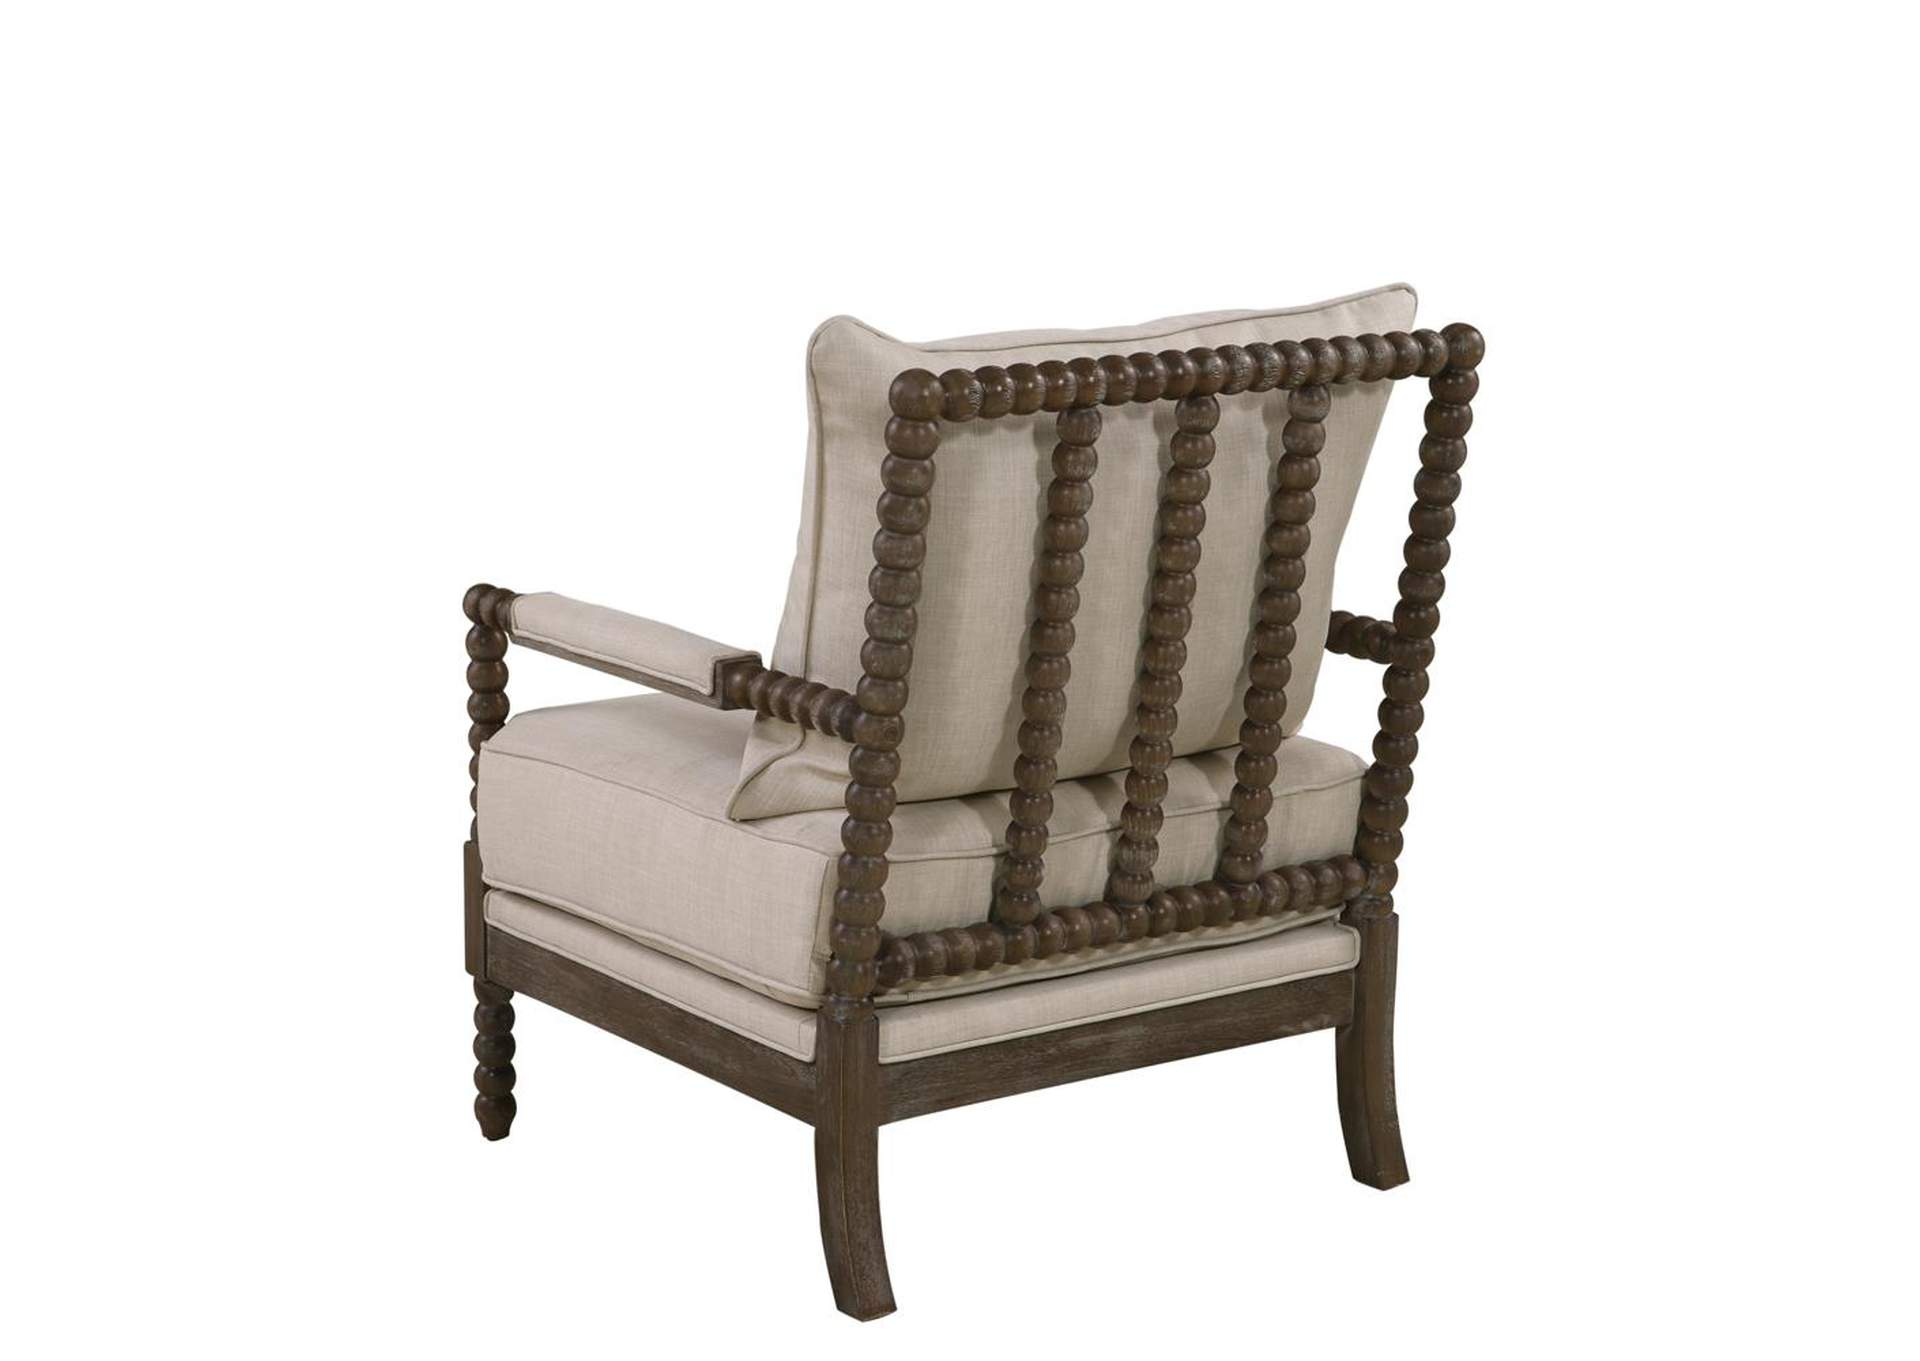 Ash Traditional Oatmeal and Natural Accent Chair,Coaster Furniture